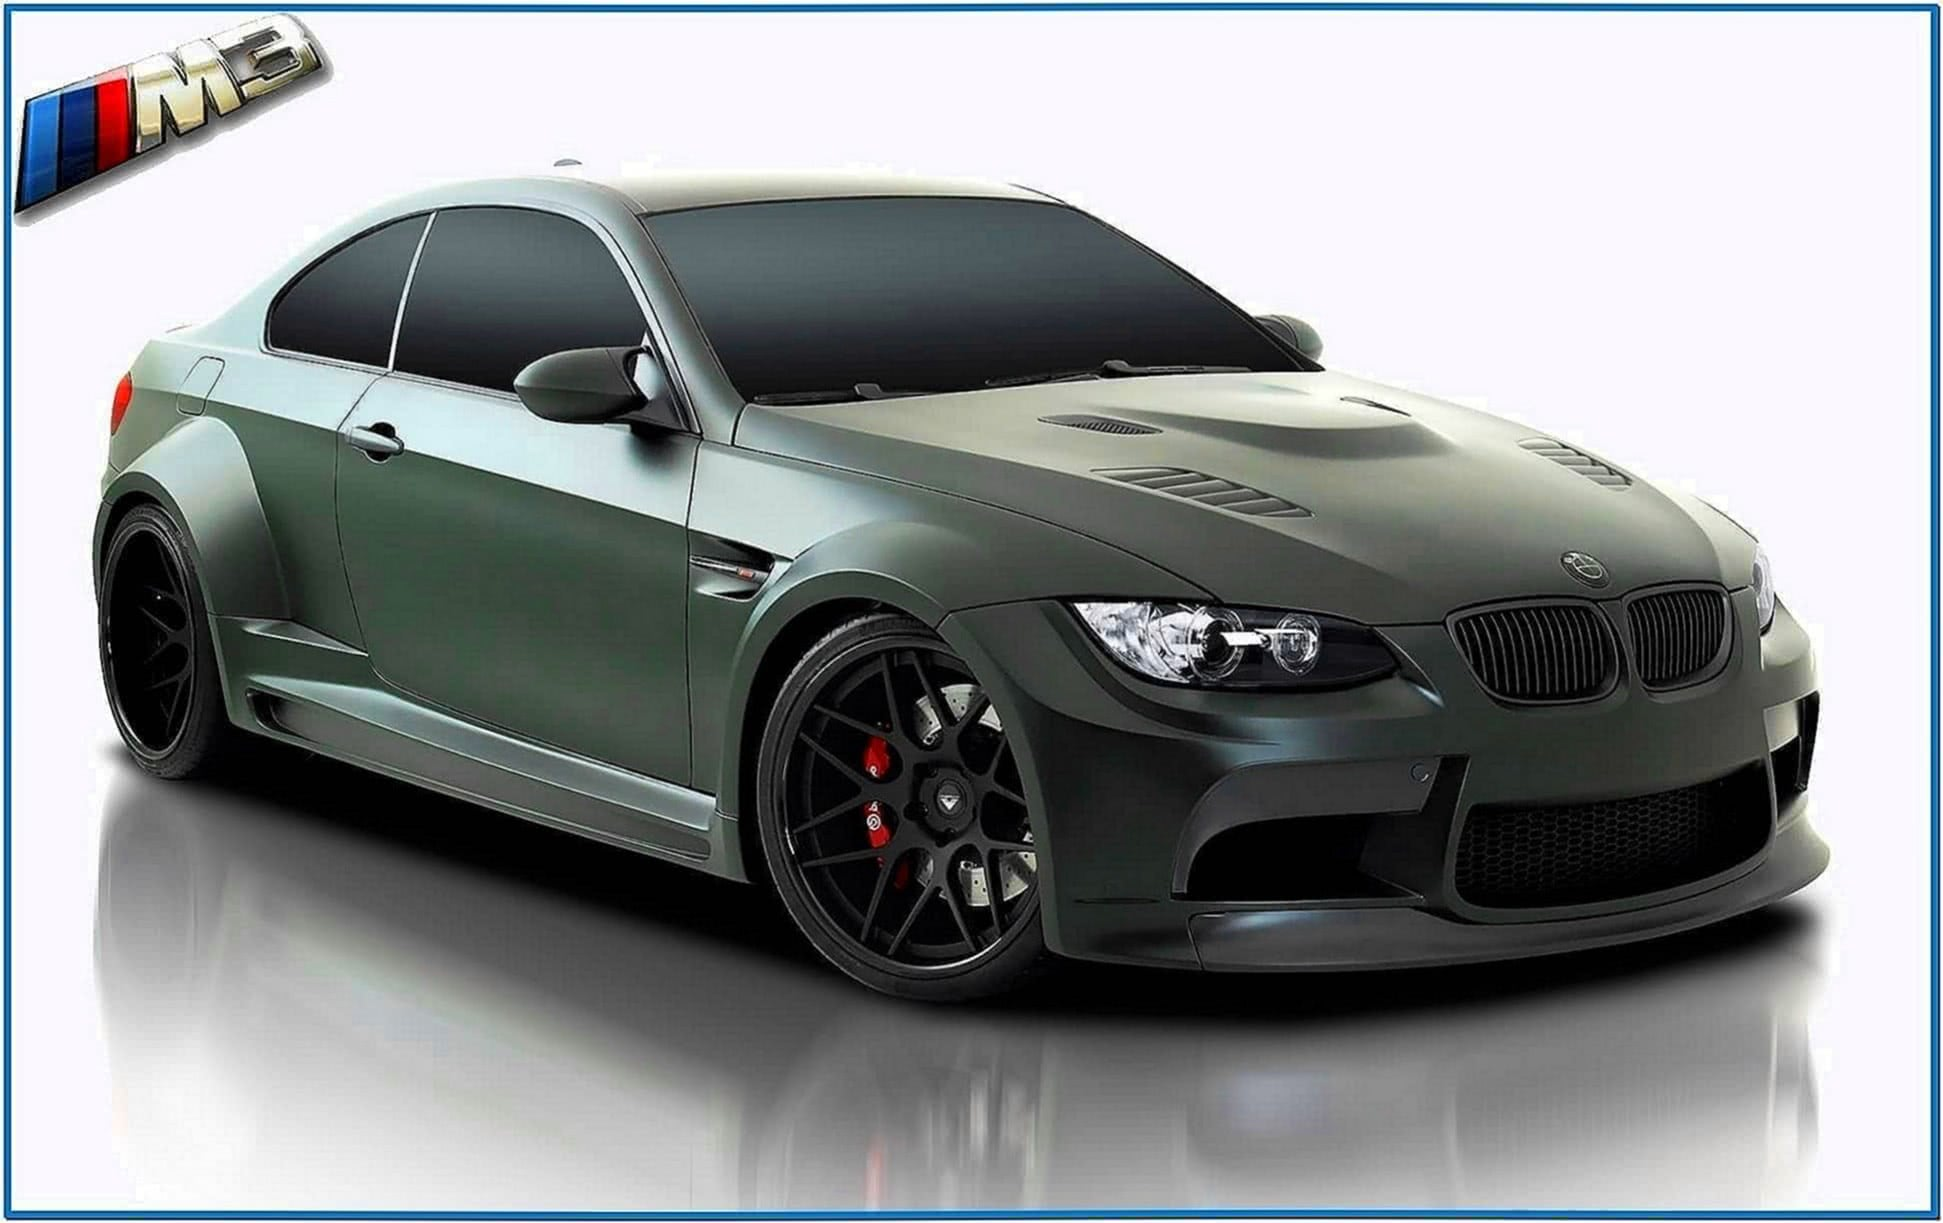 BMW M3 Screensaver